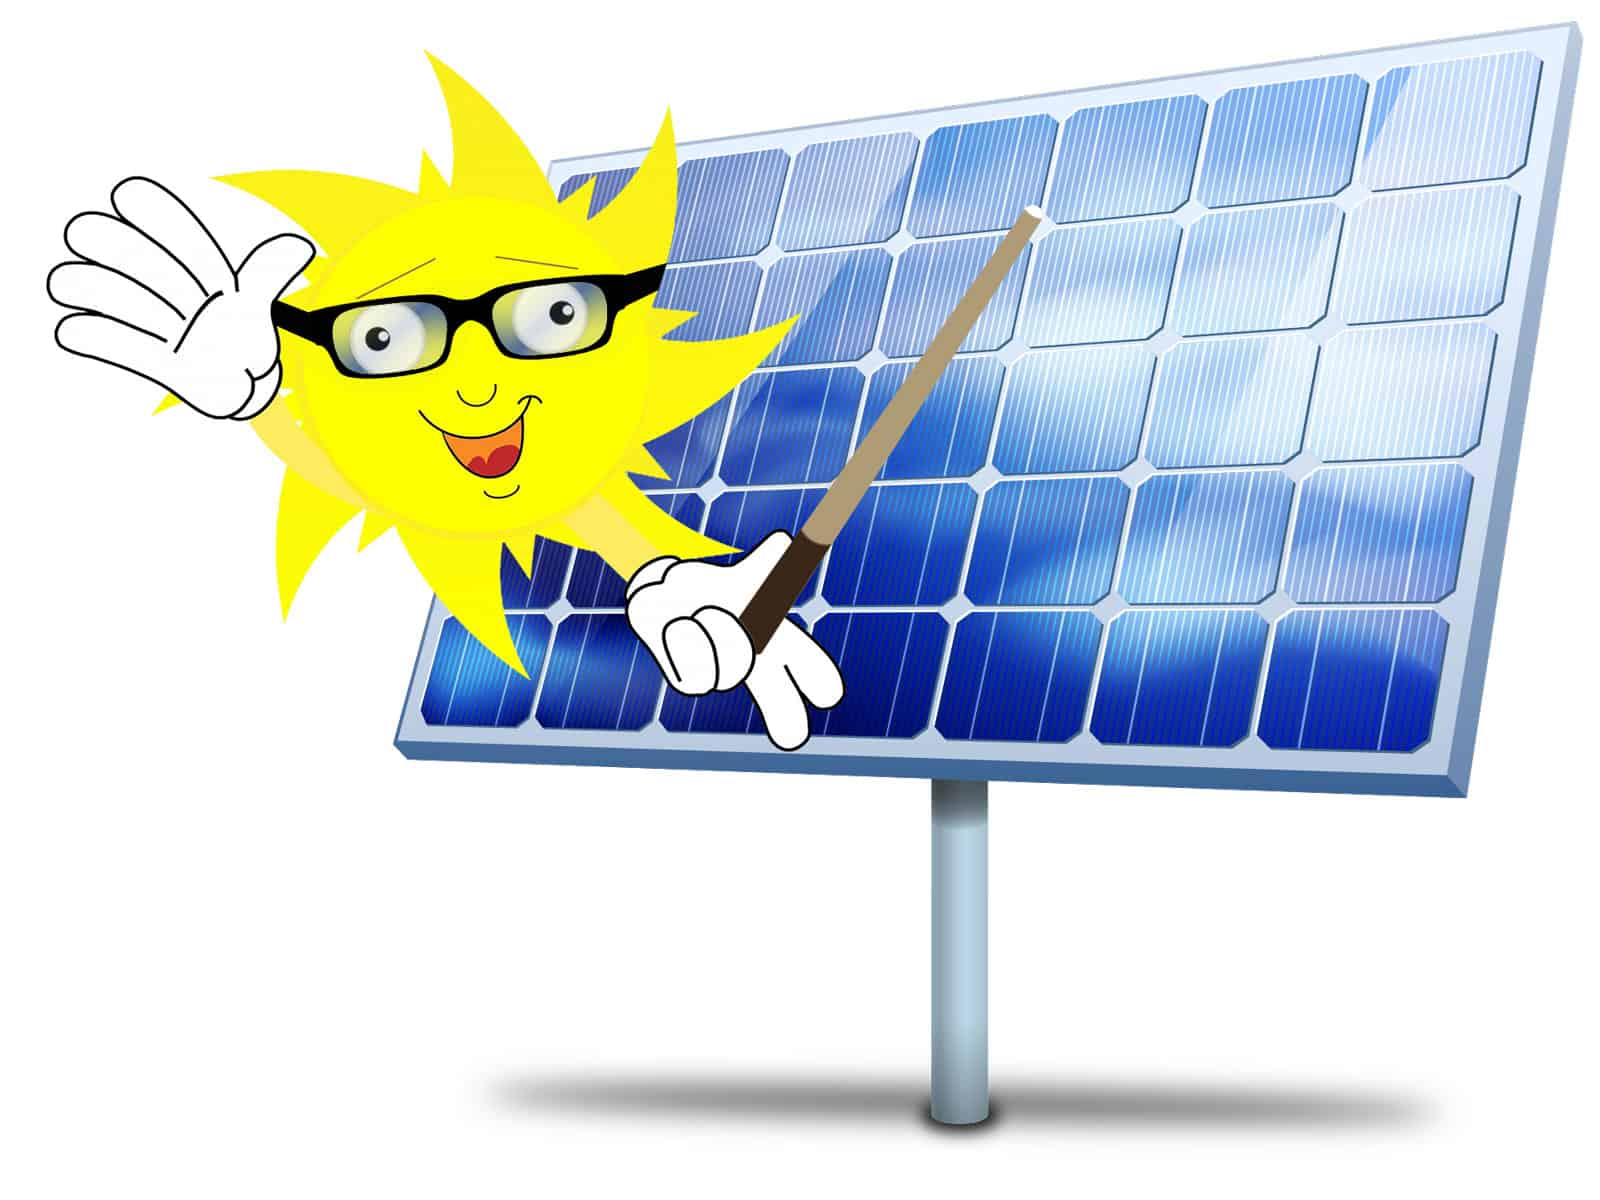 Affordable Solar - Solar Knowledge Is Power